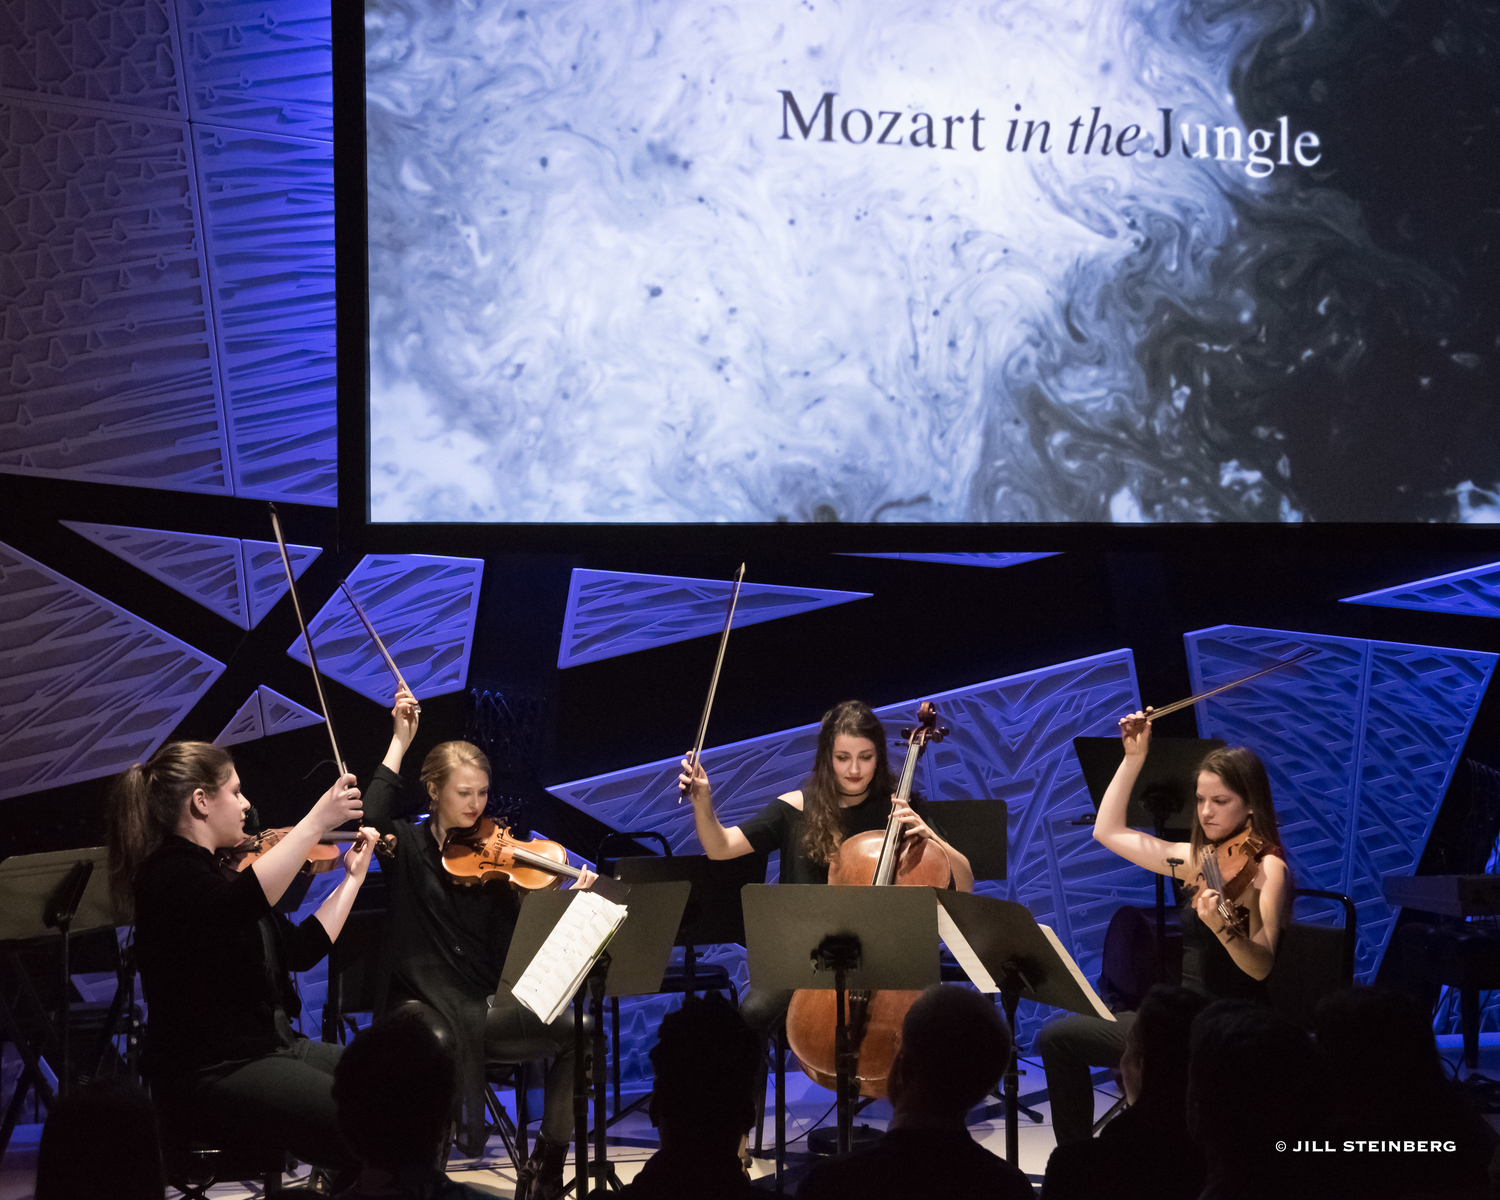 BWW Feature: MOZART IN THE JUNGLE at National Sawdust - An Evening of Humanity